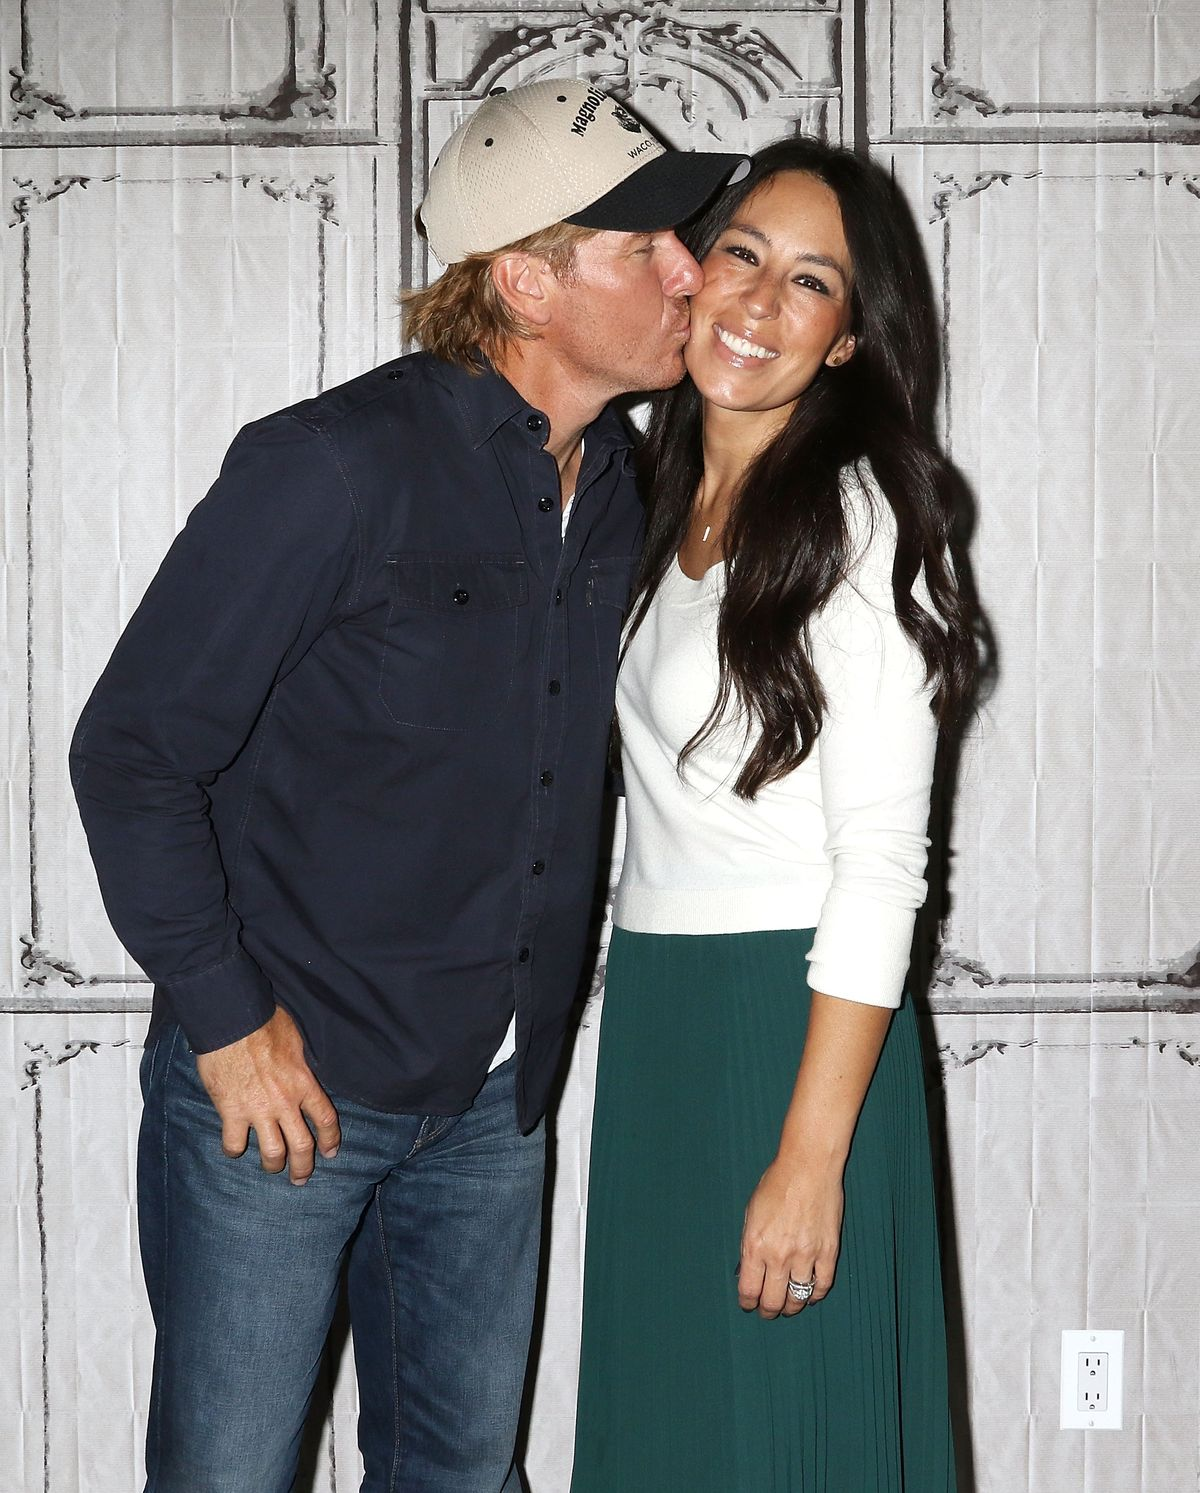 """Chip and Joanna Gaines at The Build Series to discuss """"The Magnolia Story"""" on October 19, 2016, in New York City   Photo: Laura Cavanaugh/WireImage/Getty Images"""